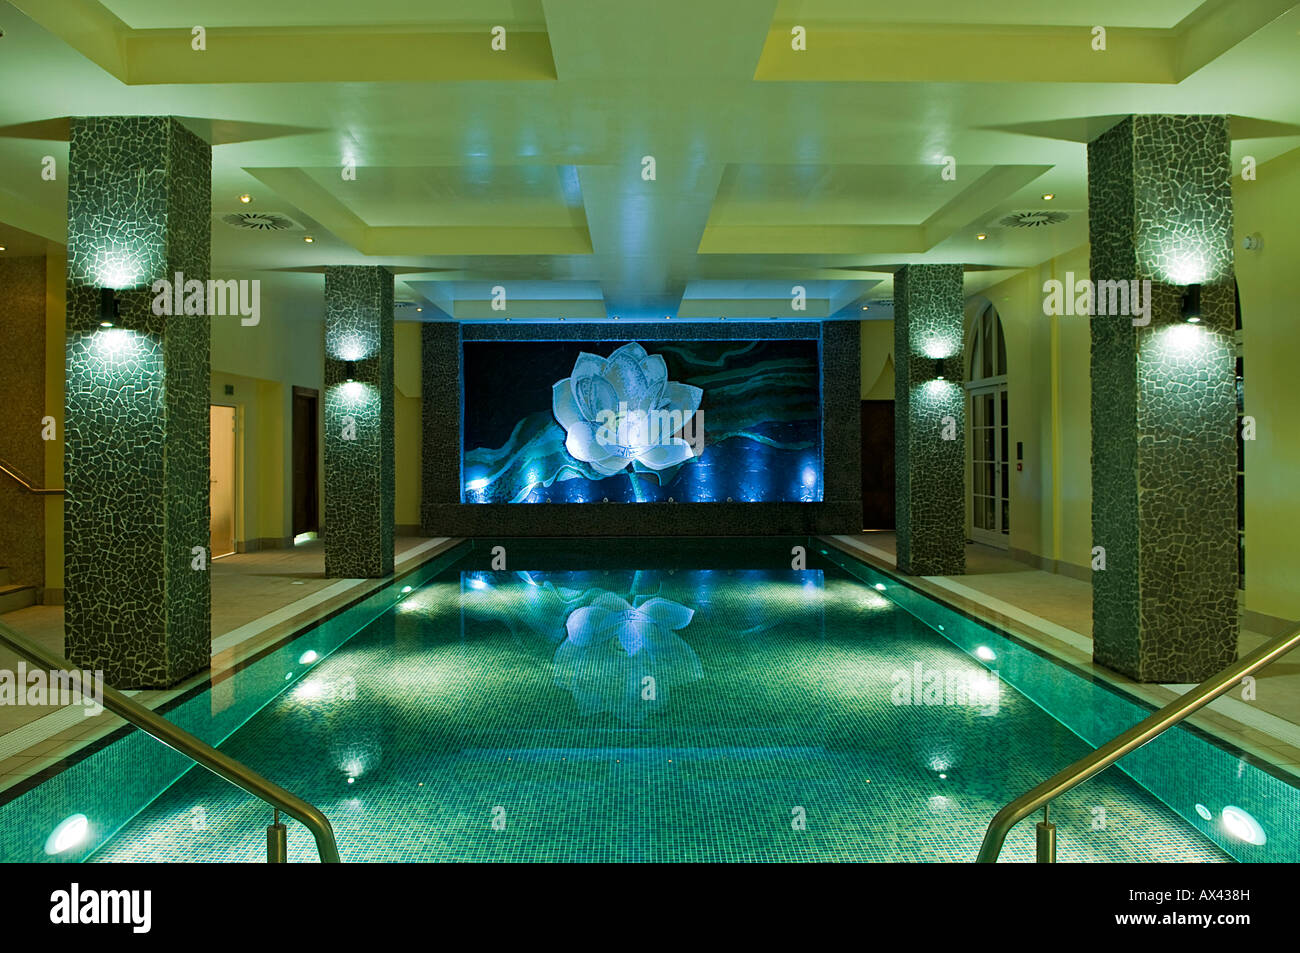 northern ireland fermanagh enniskillen the indoor swimming pool at stock photo royalty free